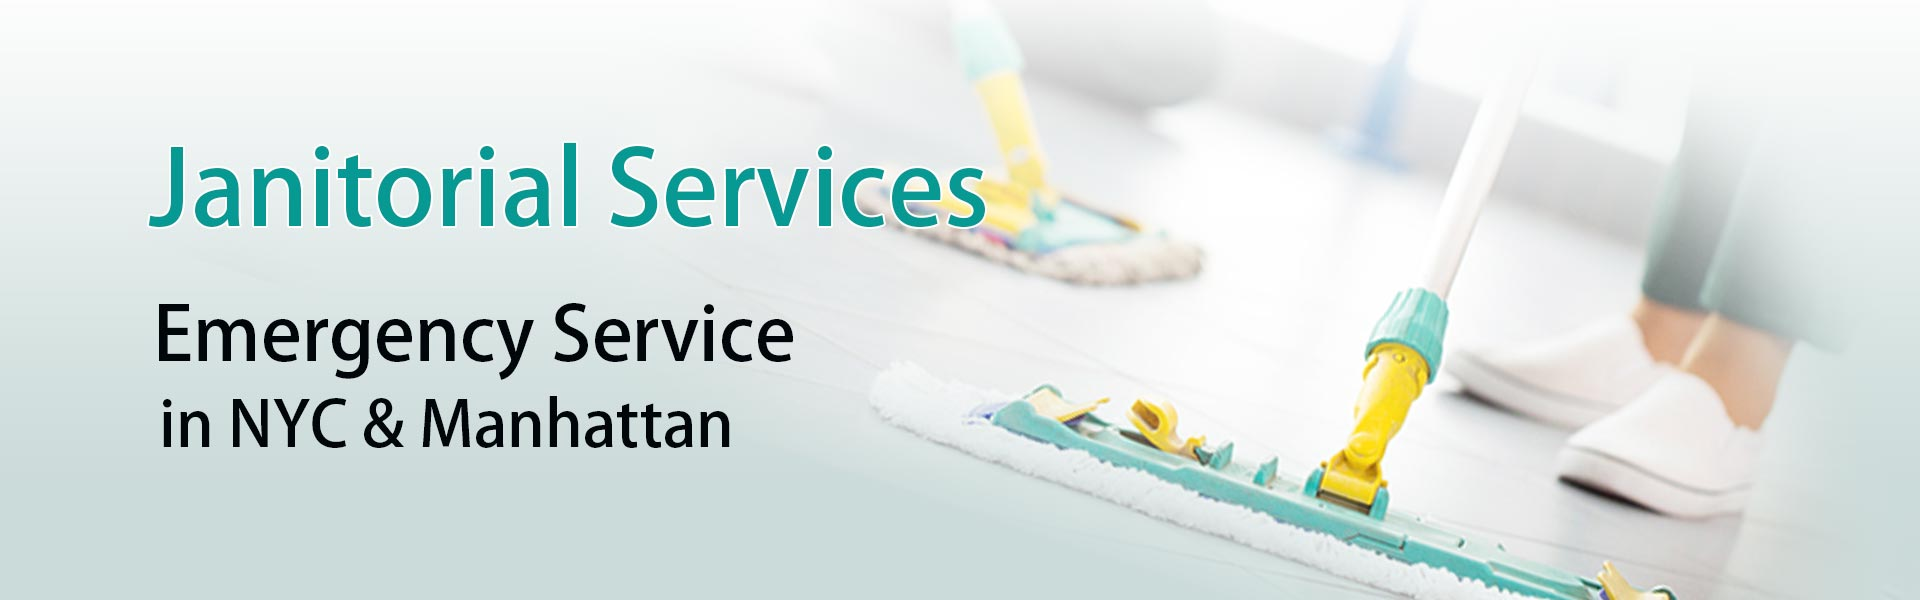 Janitorial Services New York City